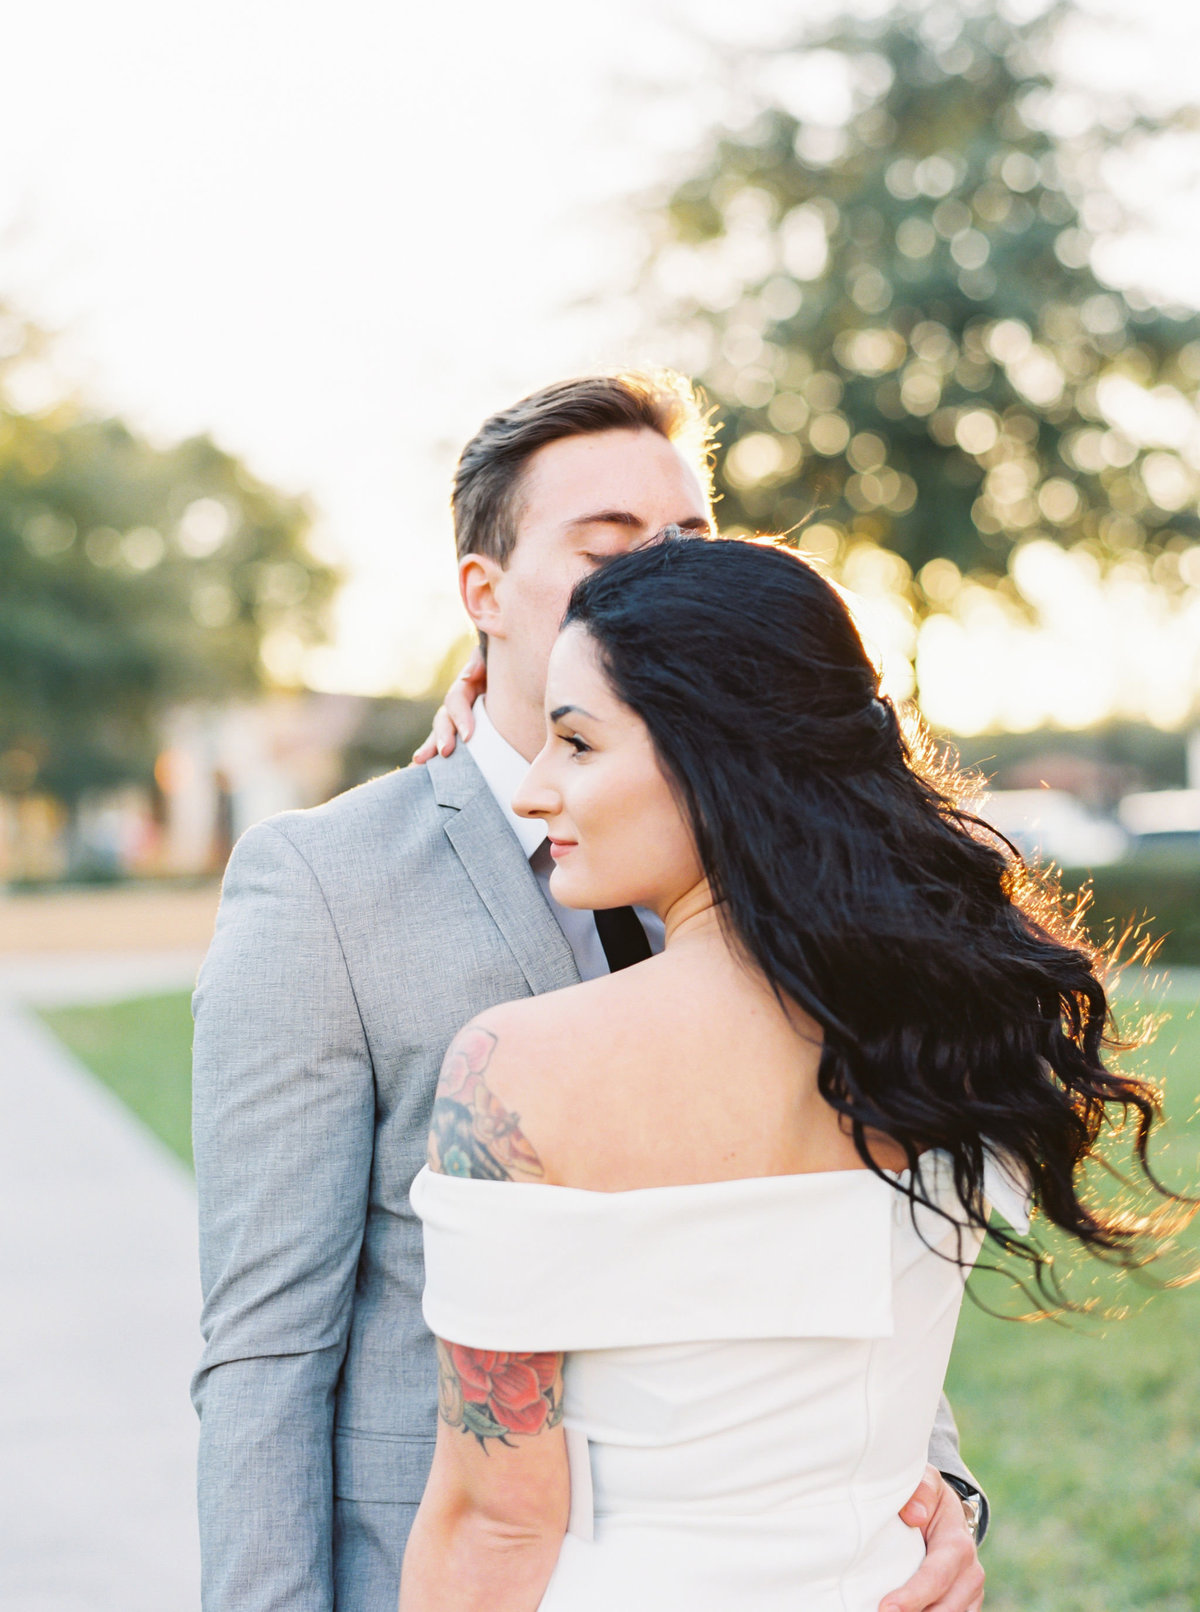 TiffaneyChildsPhotography-FloridaWeddingPhotographer-Kaity+Joe-RollinsCollegeAnniversarySession-50